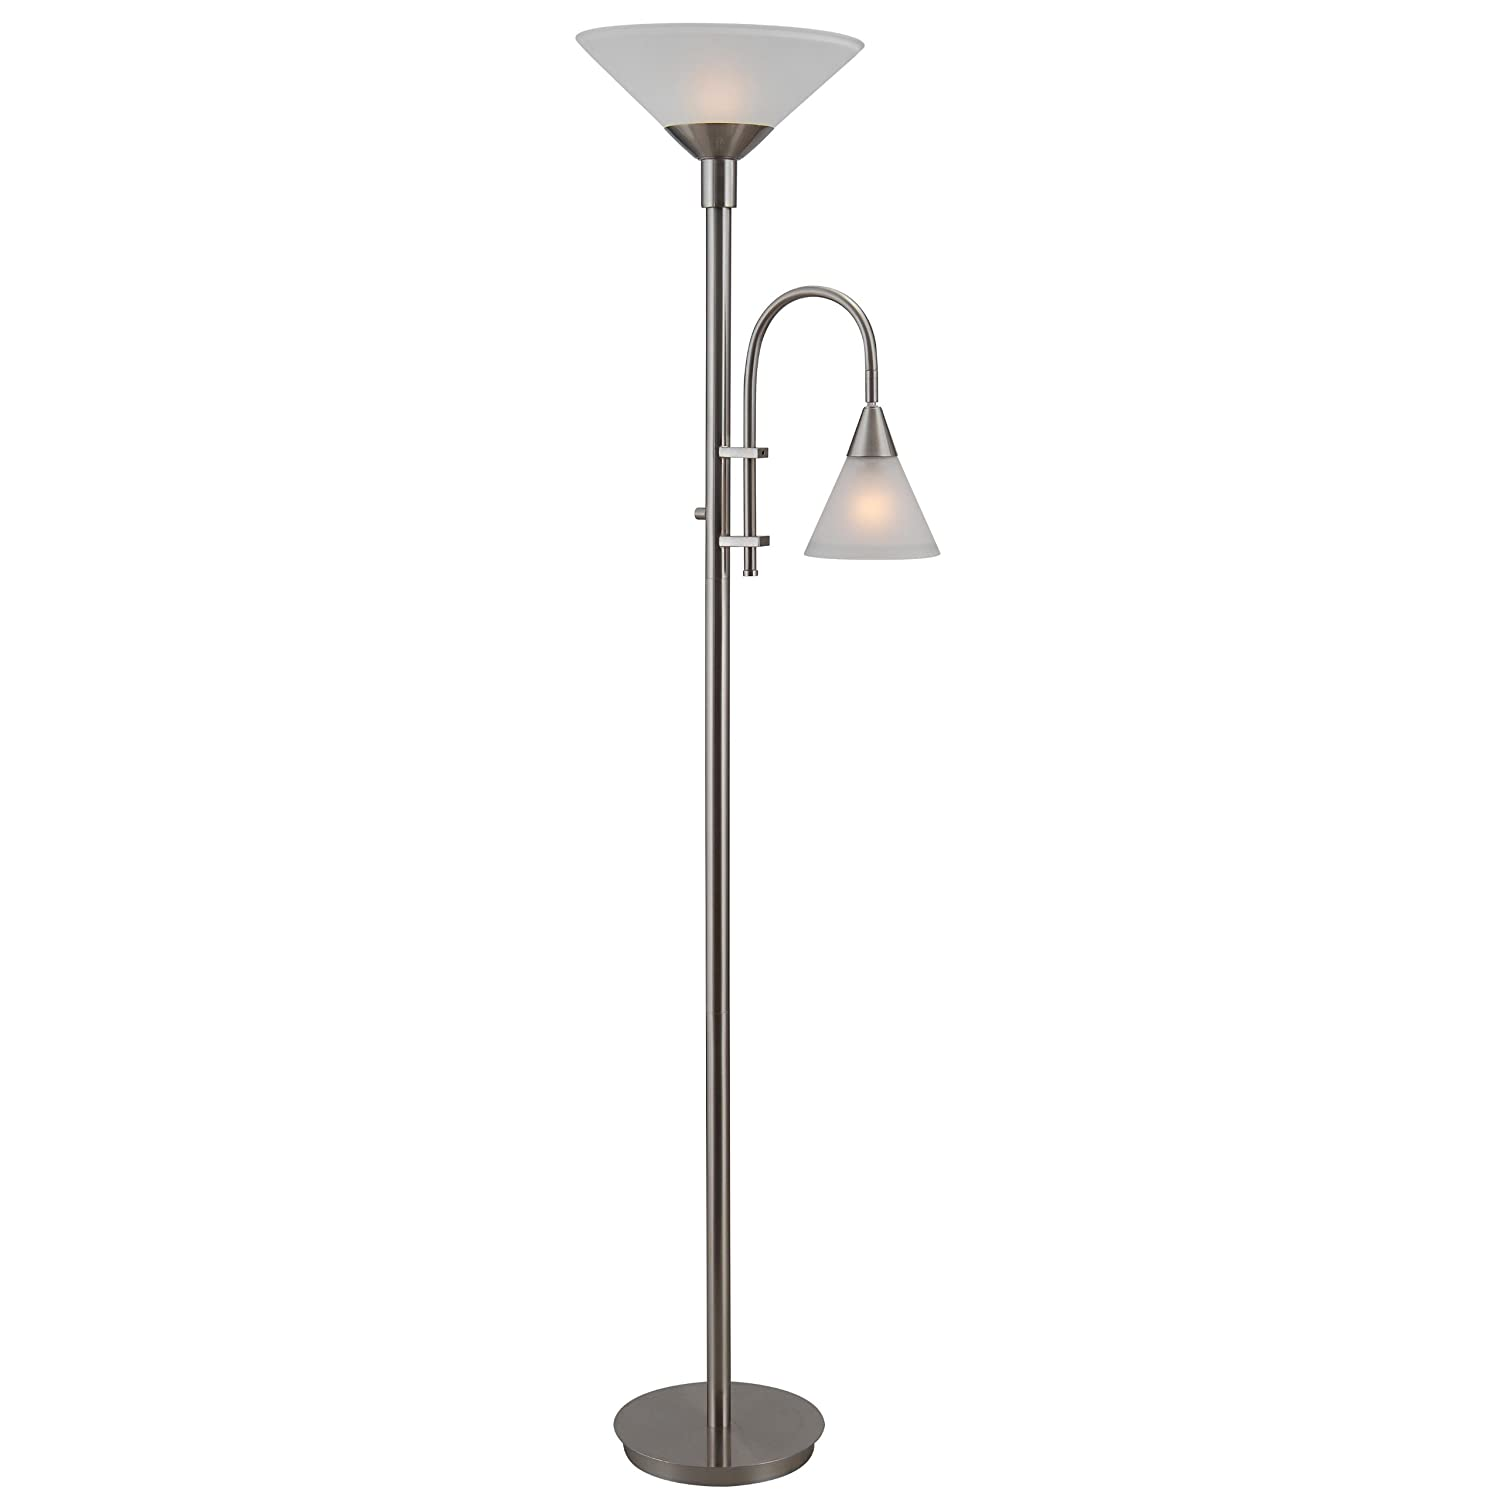 Kenroy Home Brady Torchiere with Reading Arm, Brushed Steel Finish